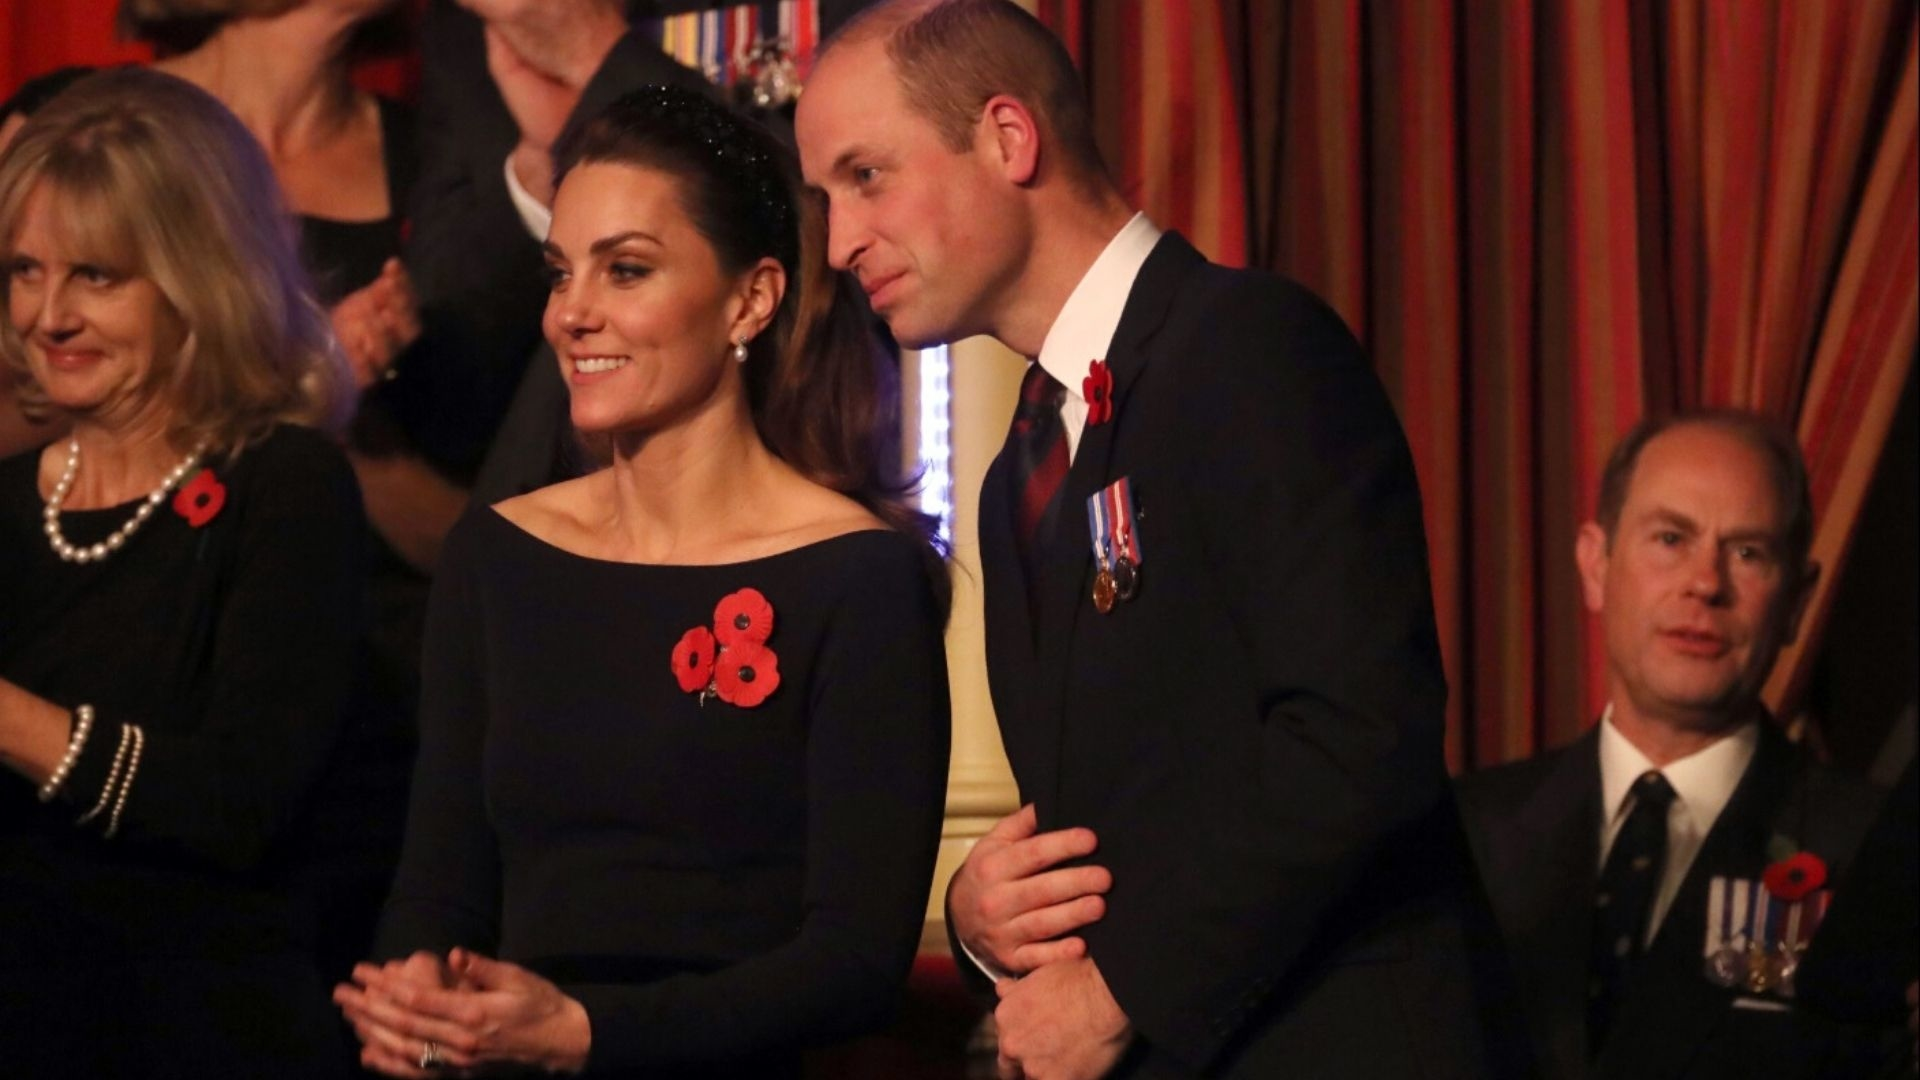 Prince William And Kate Middleton Will Be Attending The 2020 BAFTA Awards